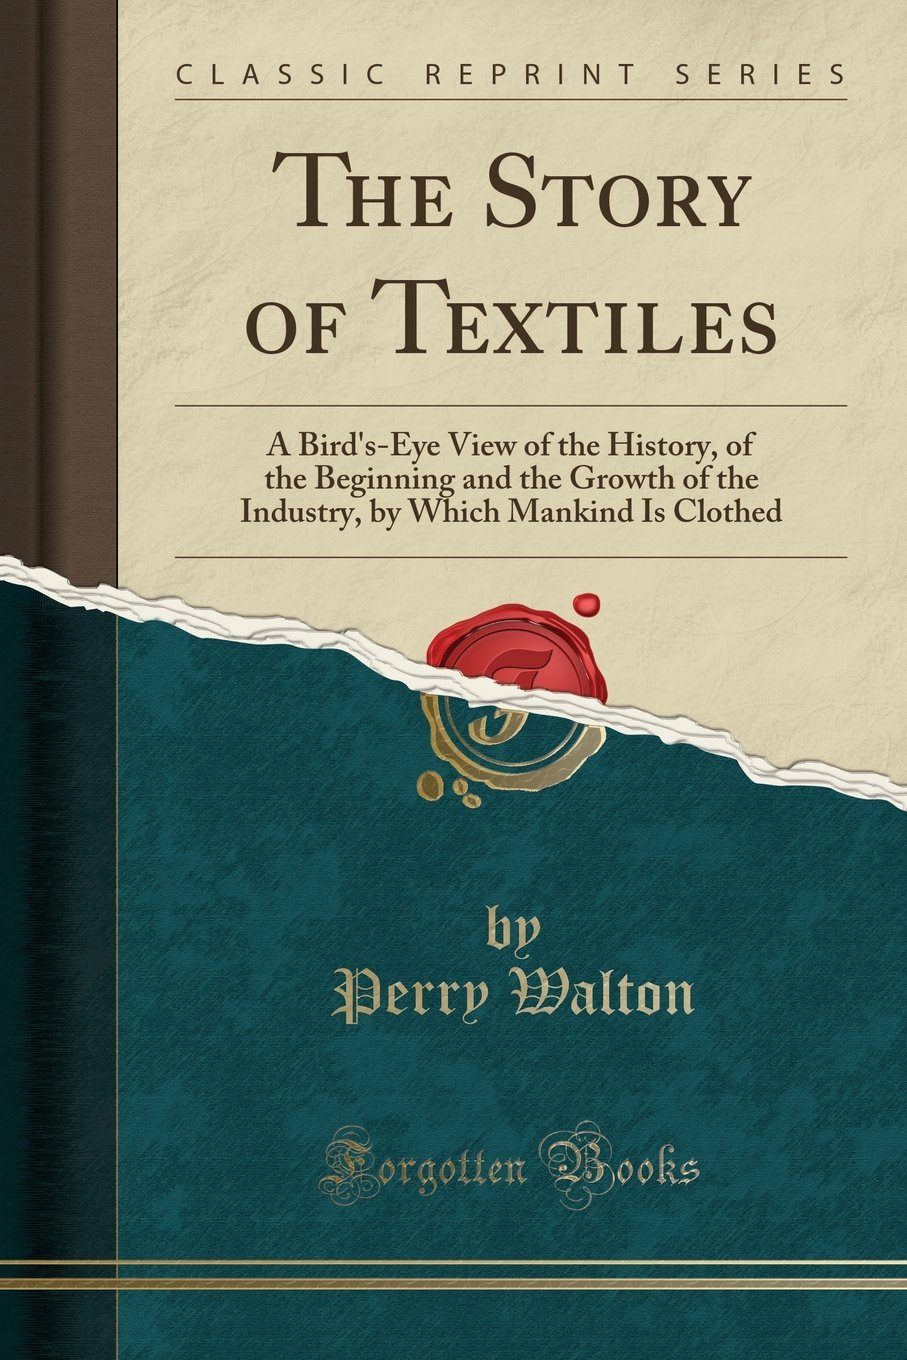 Read Online The Story of Textiles: A Bird's-Eye View of the History, of the Beginning and the Growth of the Industry, by Which Mankind Is Clothed (Classic Reprint) PDF